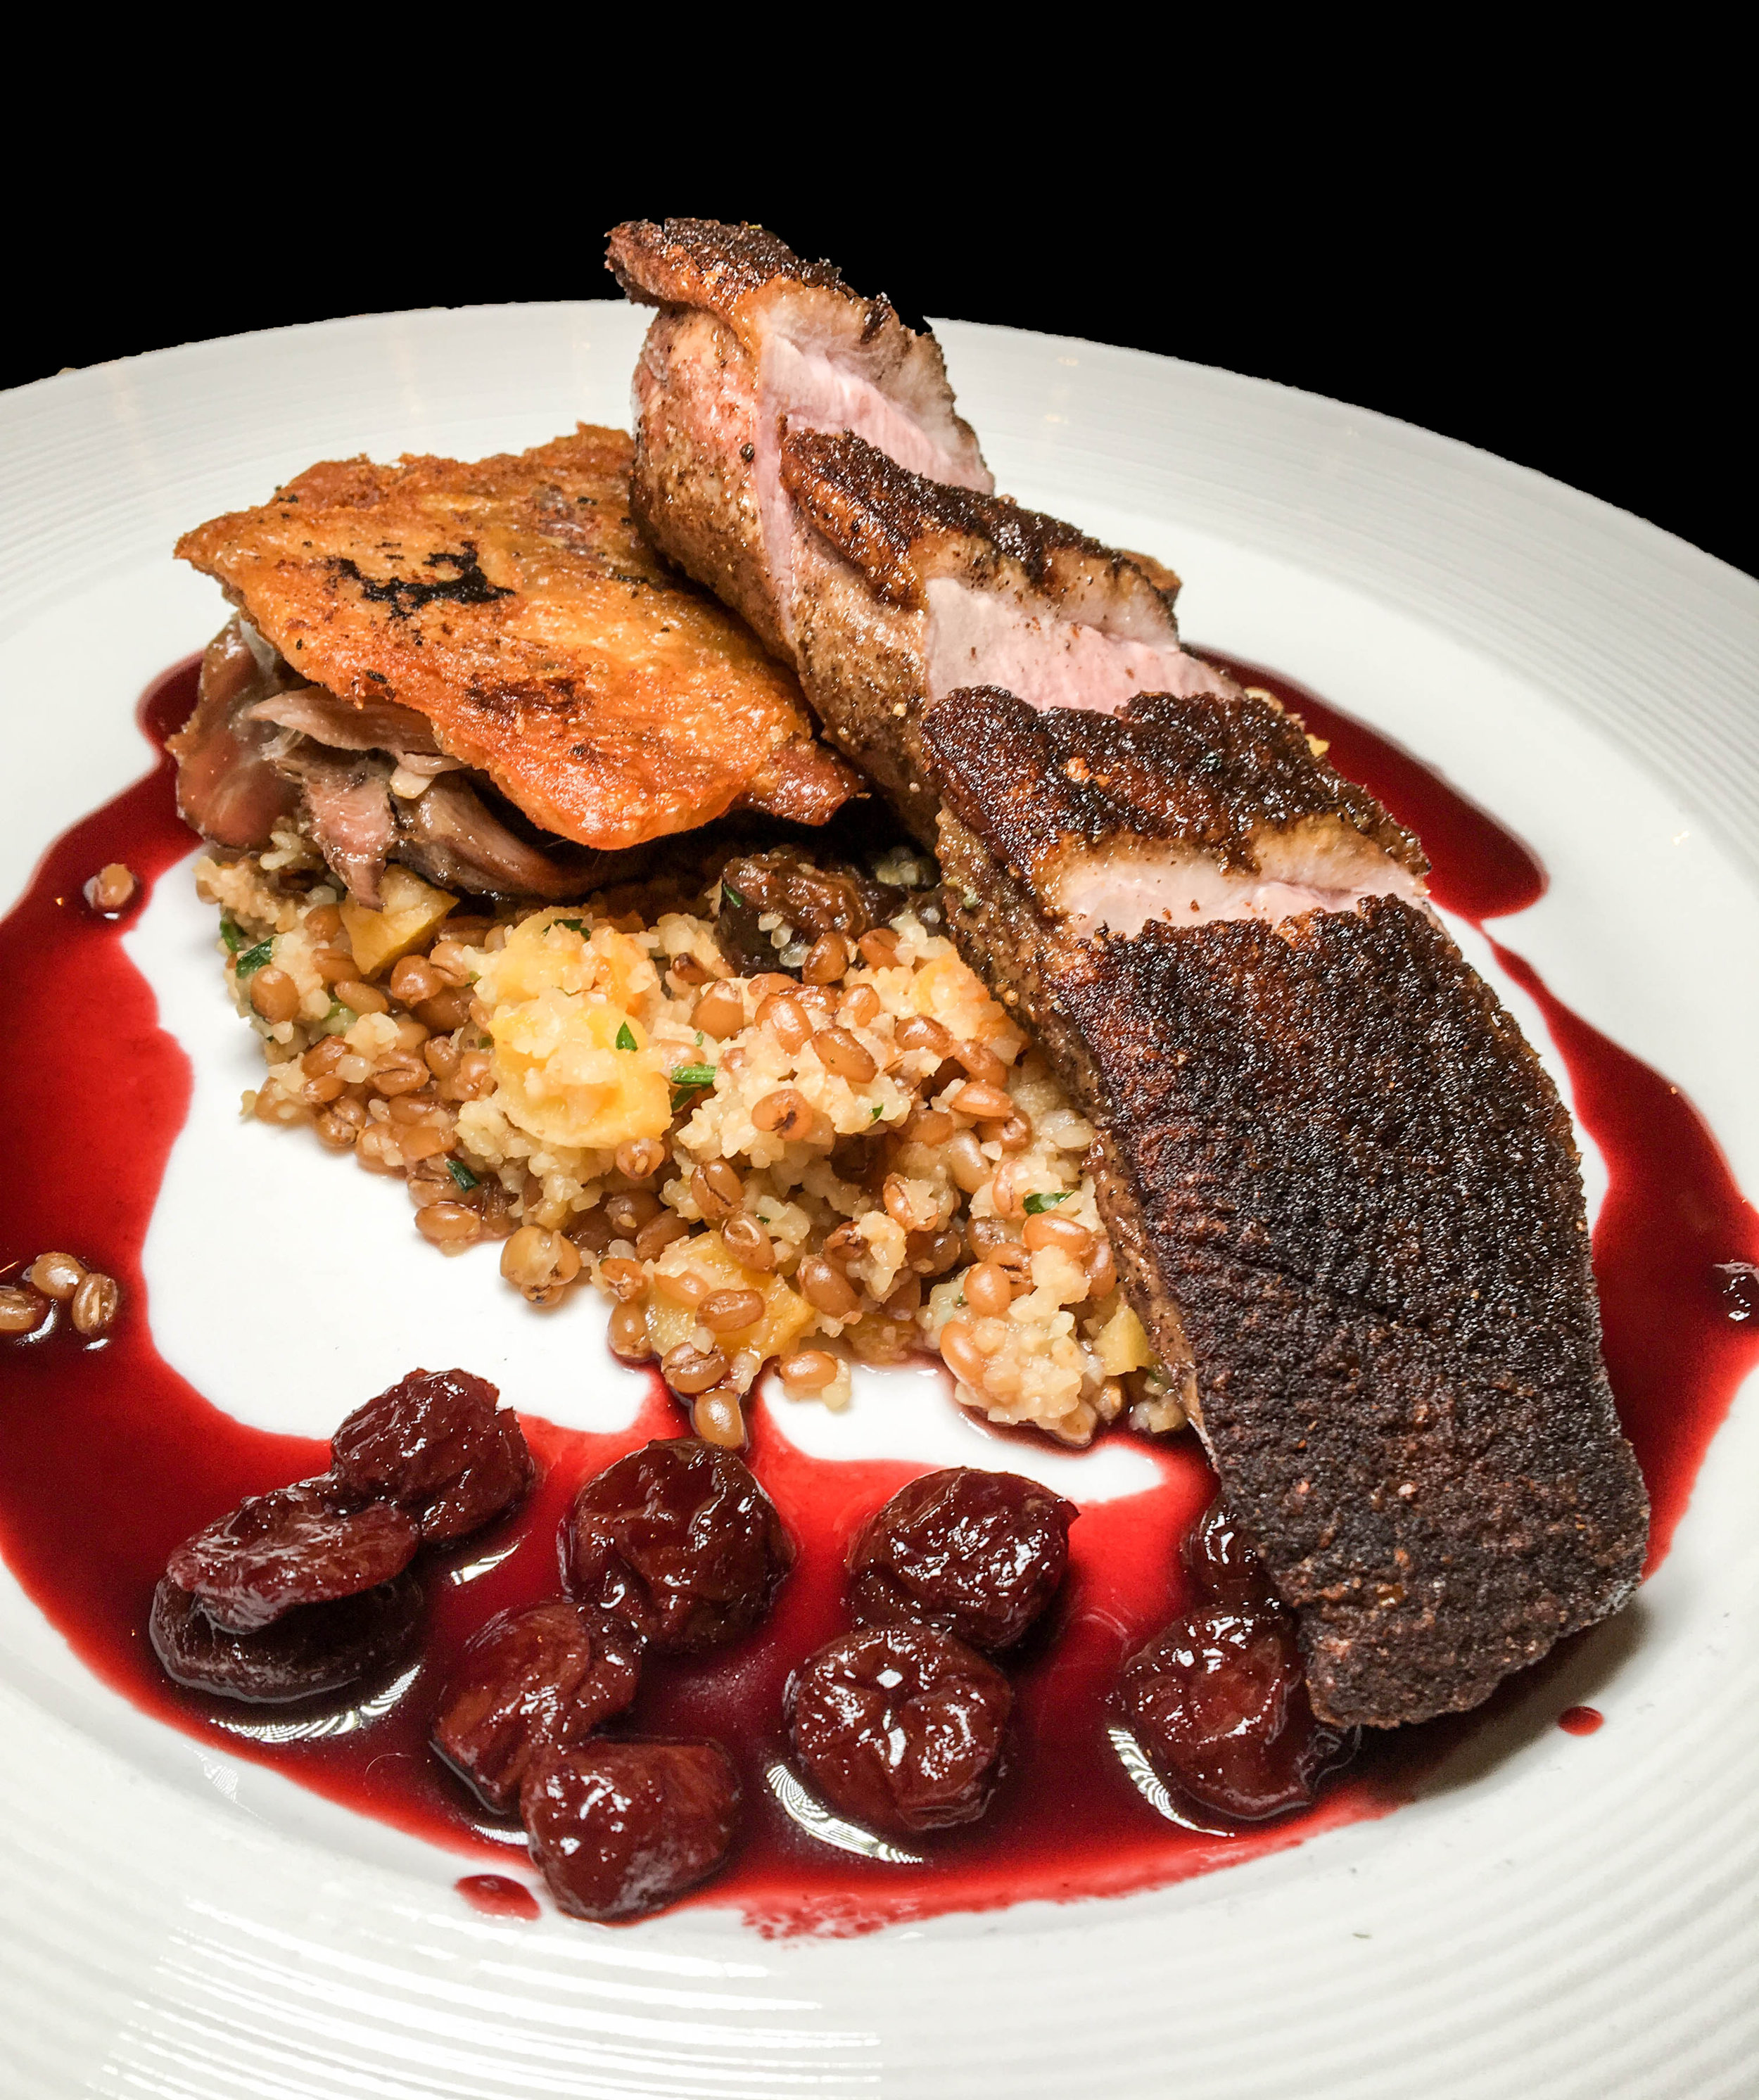 Crisp Long Island Duck Breast and Crisp Leg Confit - Apricot Wheatberry Pilaf, Spiced Cherry-Port Glaze